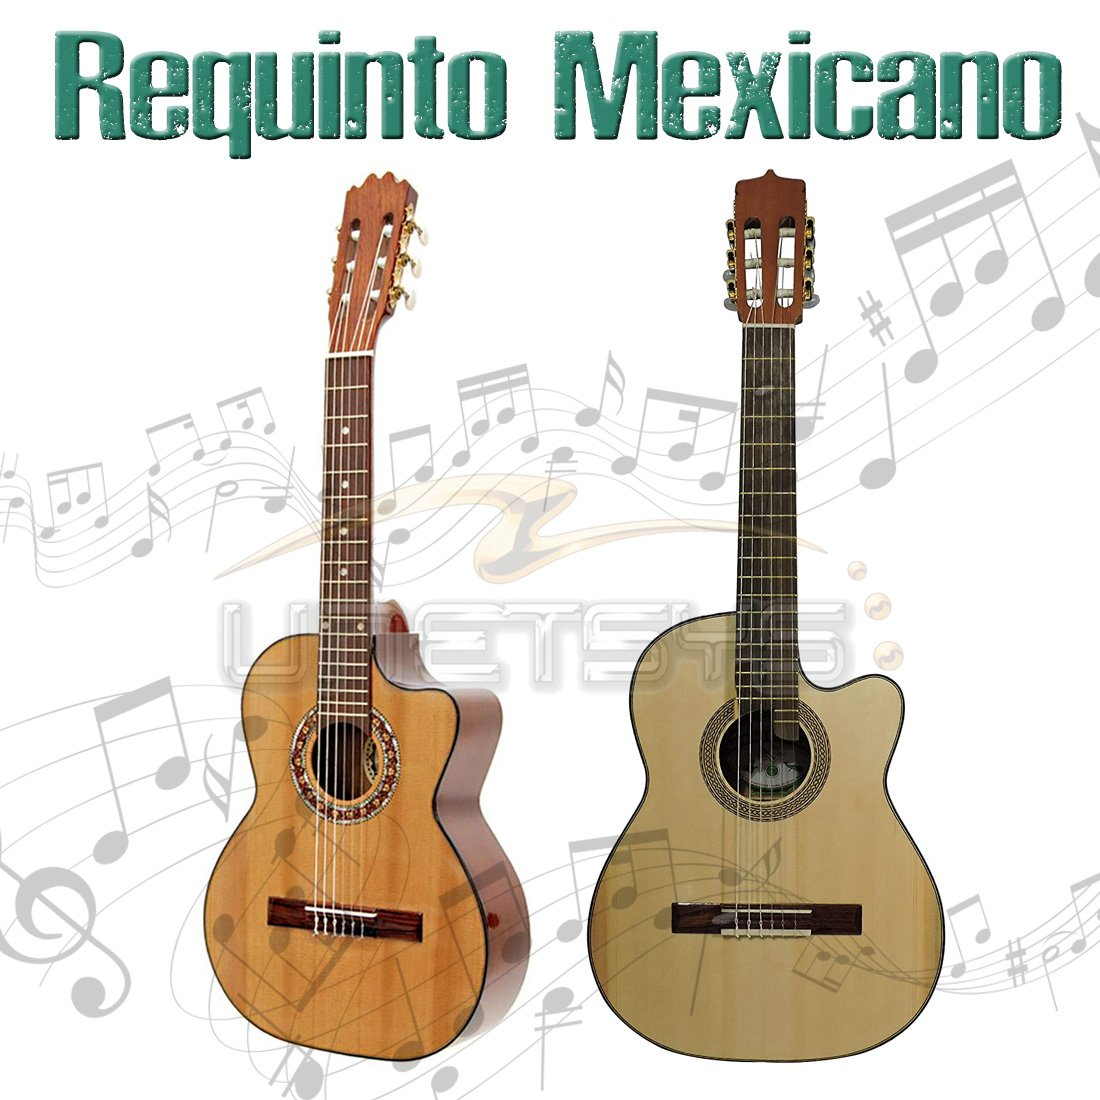 https://0201.nccdn.net/1_2/000/000/16c/c3a/requinto-mexicano.jpg